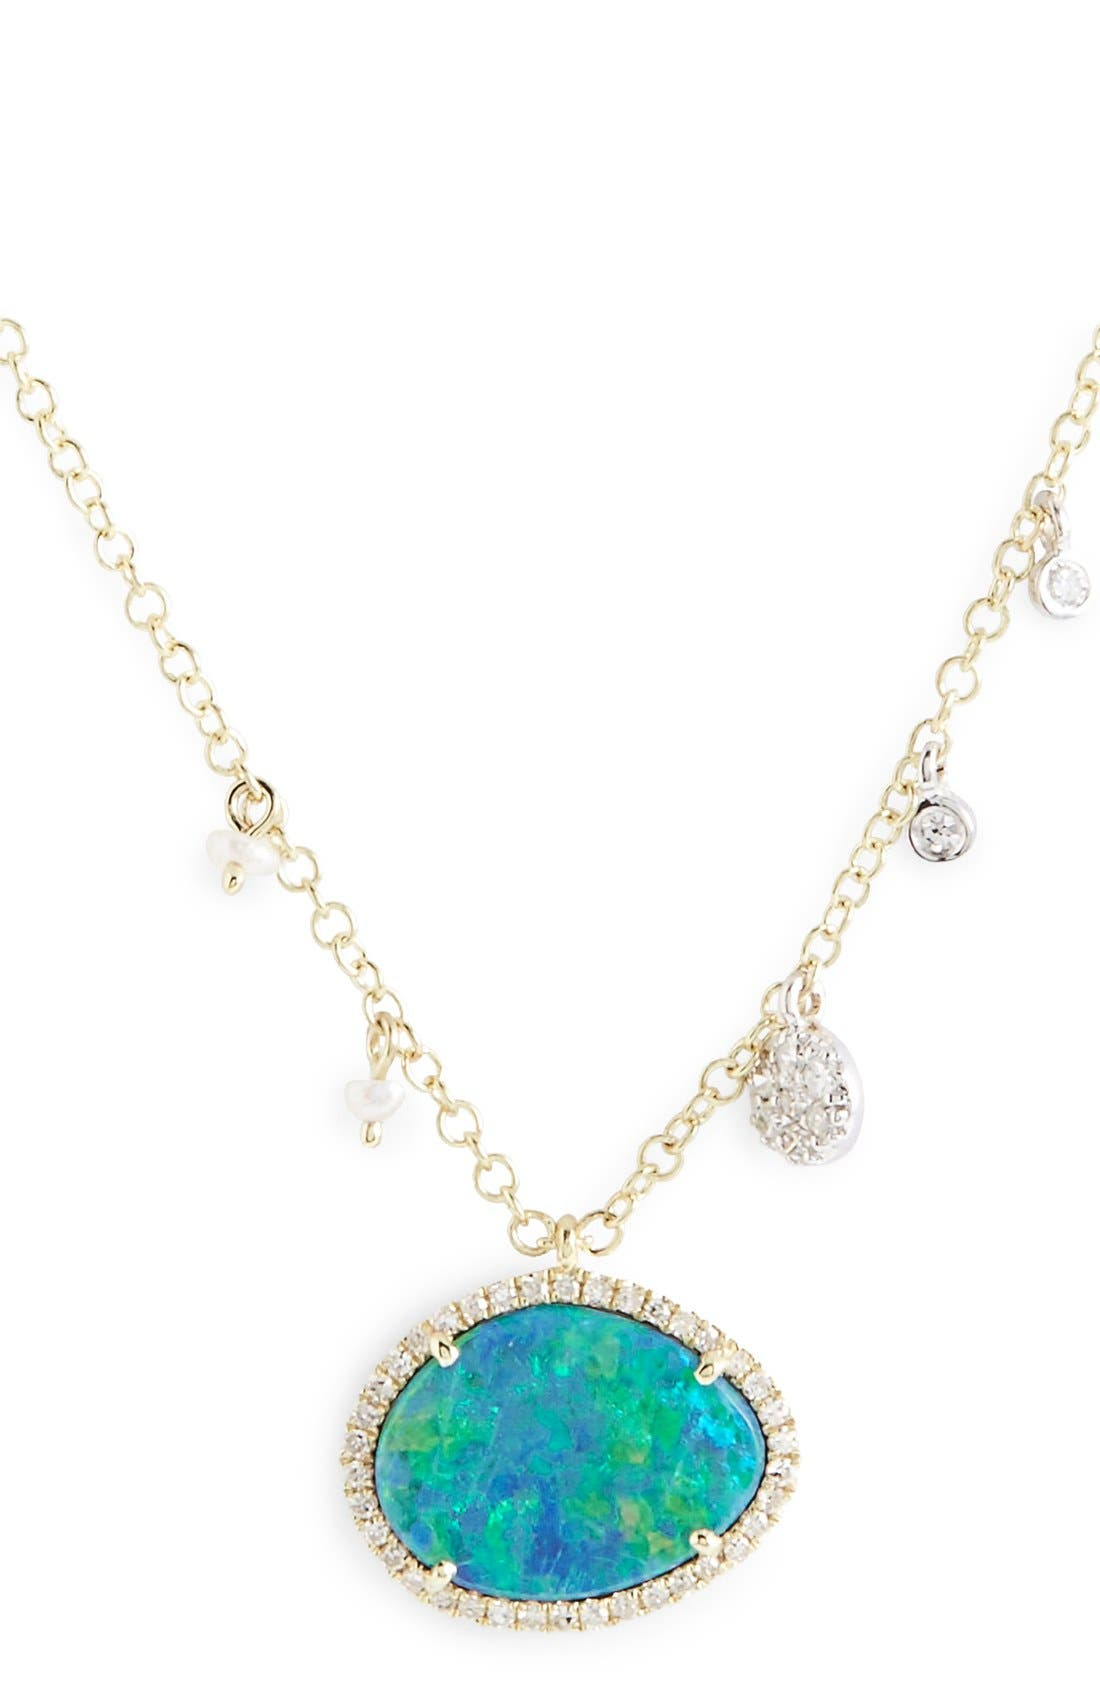 Stone Pendant Necklace,                         Main,                         color, Yellow Gold/ Blue Opal